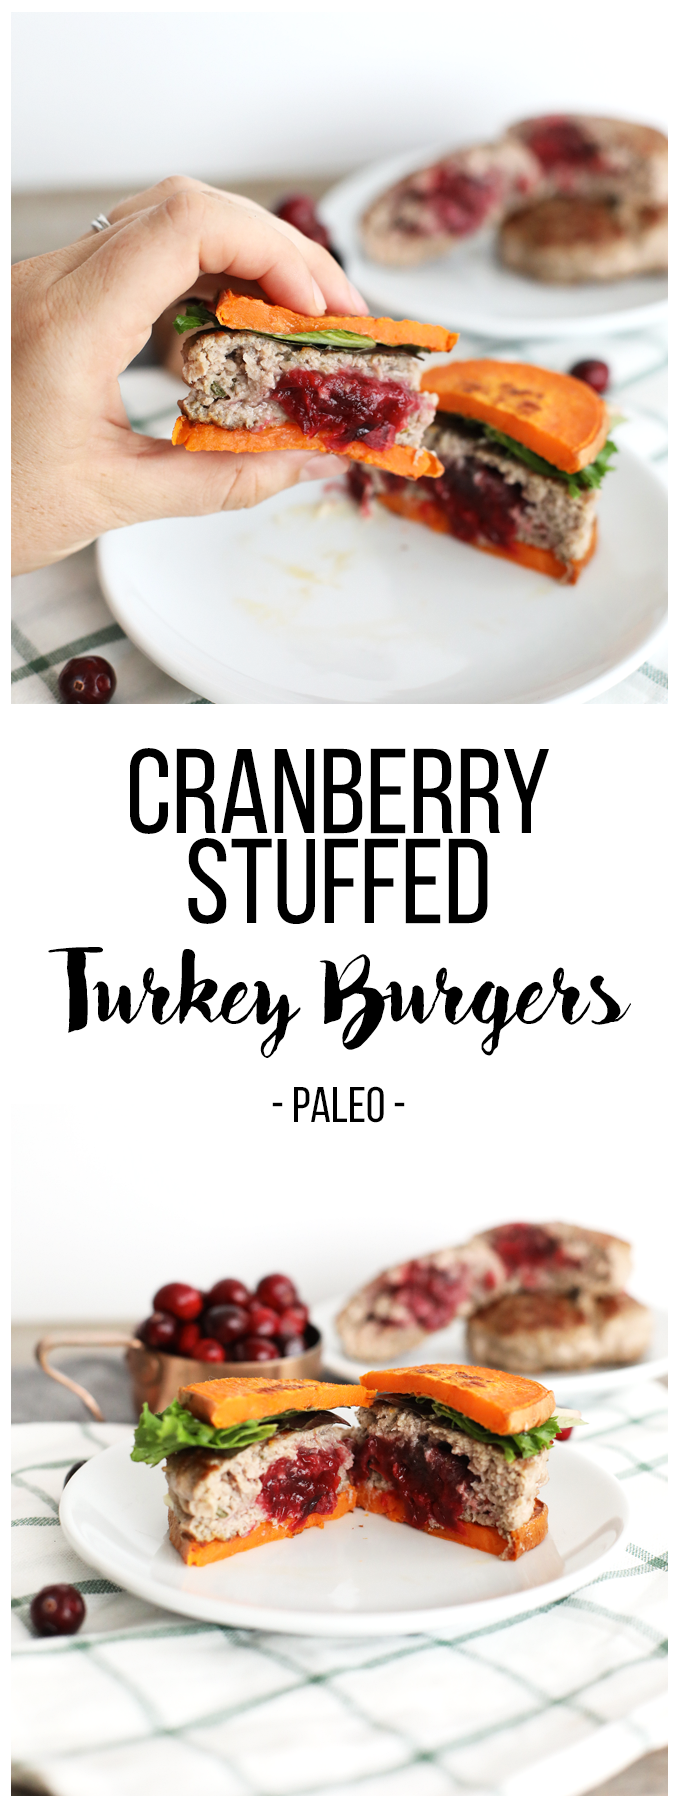 This Cranberry Stuffed Turkey Burger recipe is the perfect way to celebrate the holiday season! Quick, easy and paleo friendly!